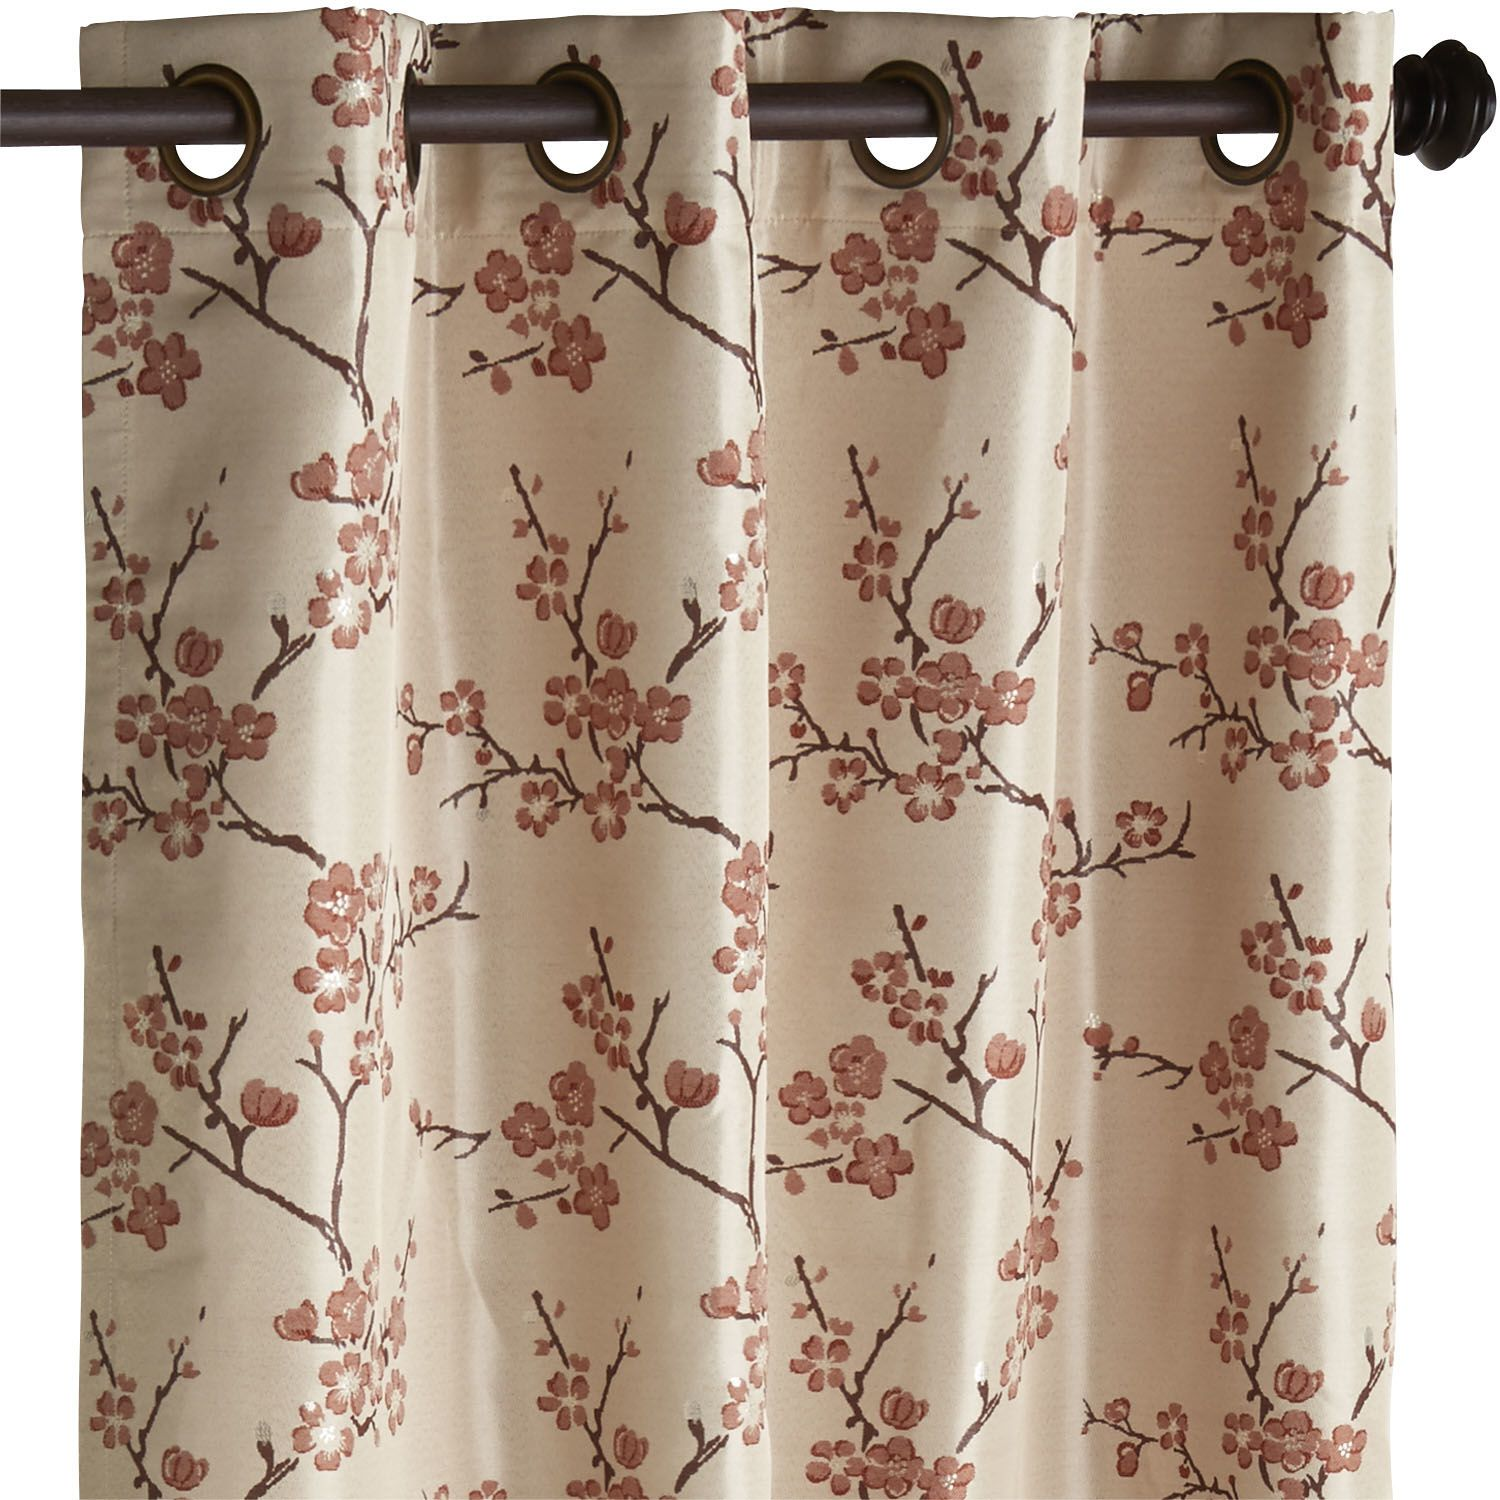 Cherry Blossom Curtain   Coral   Pier 1 Imports